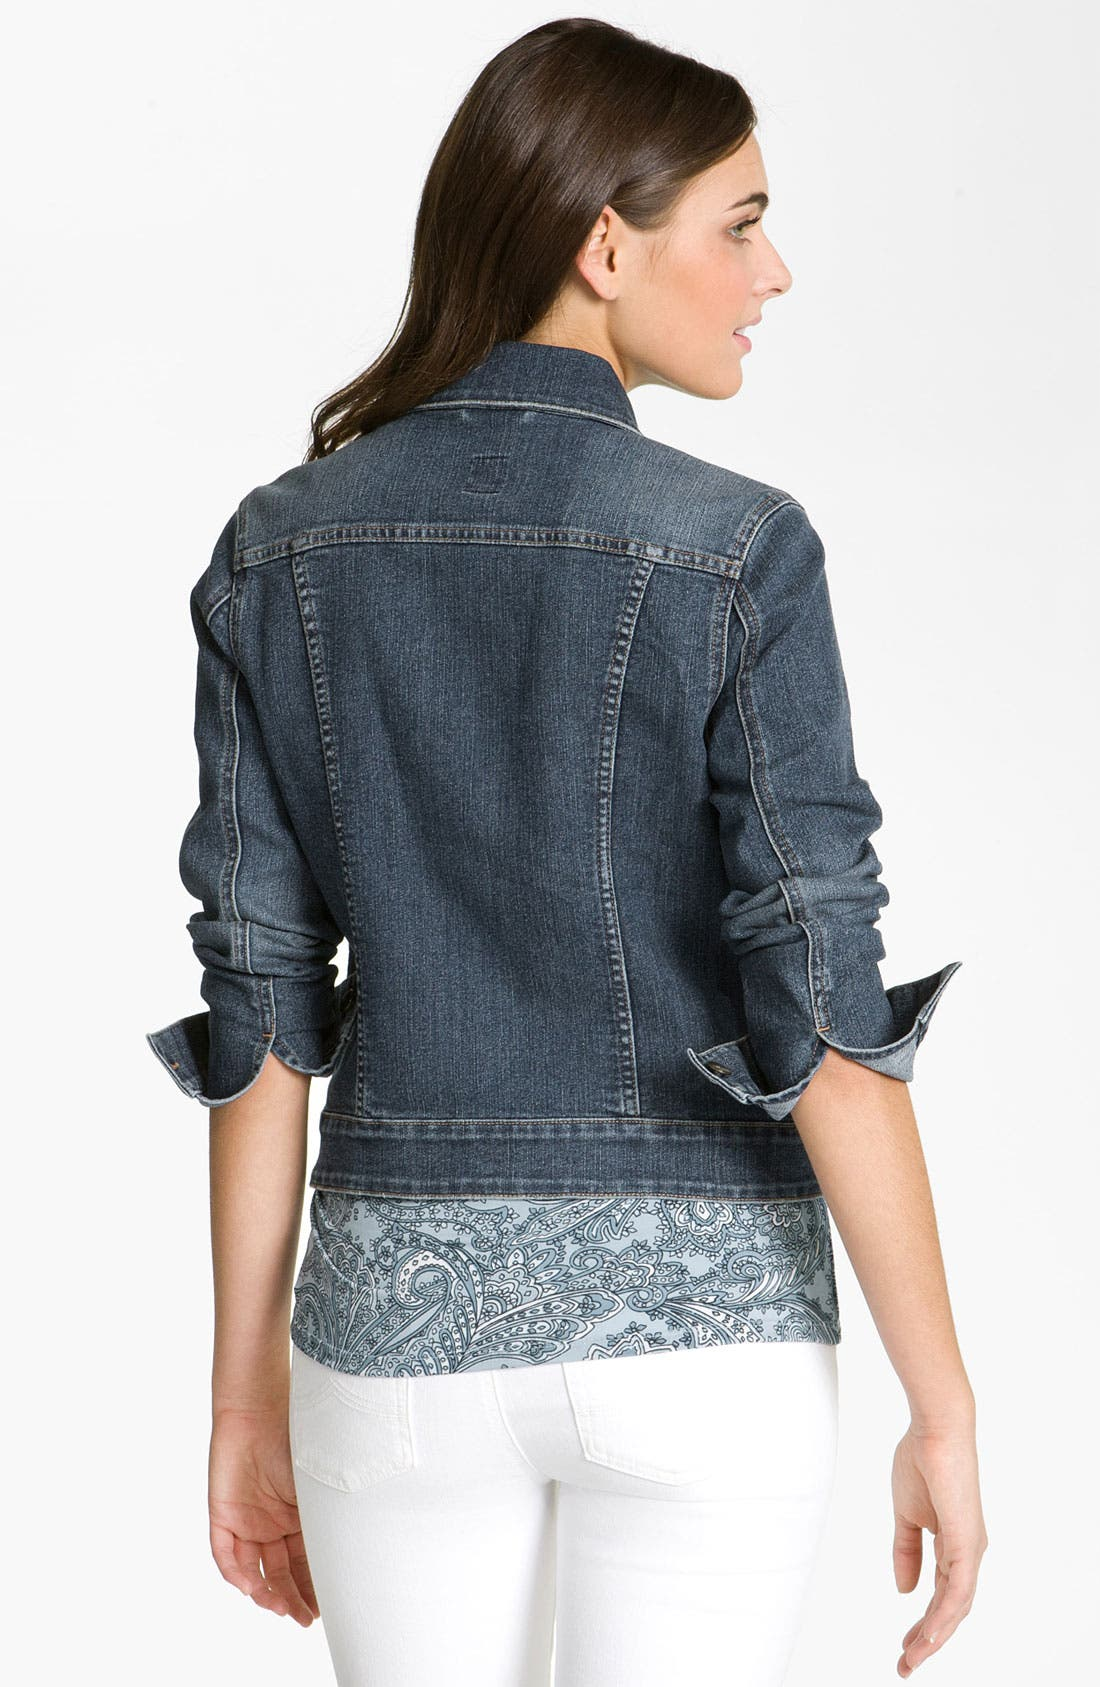 Alternate Image 2  - Jag Jeans 'Rupert' Denim Jacket (Petite)